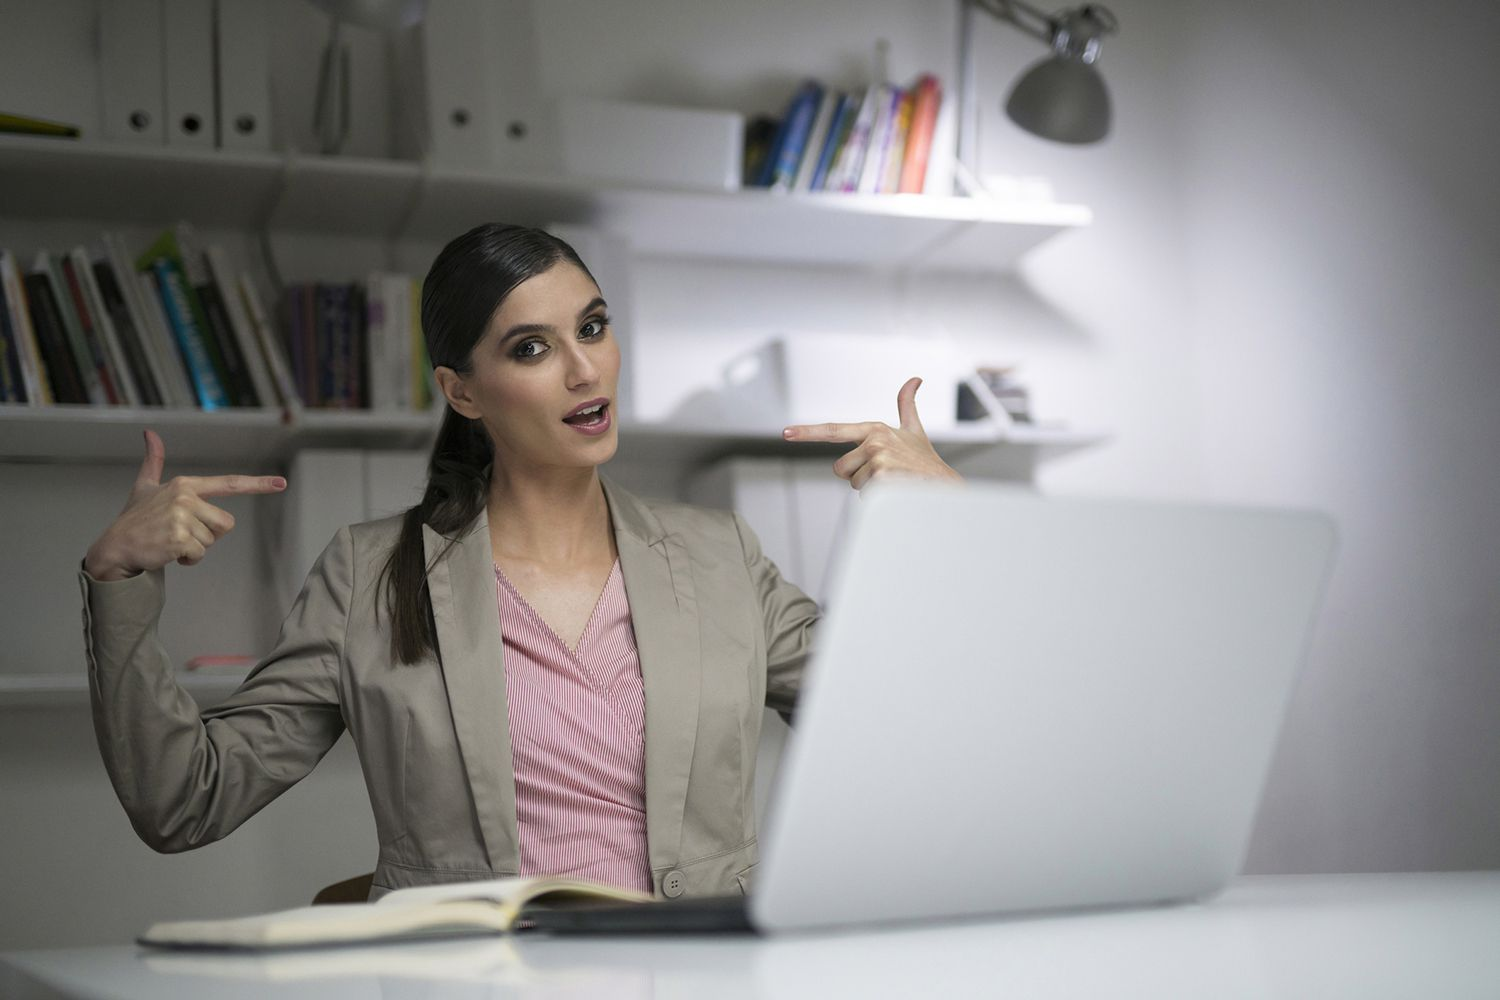 Woman pointing both fingers at herself confidently